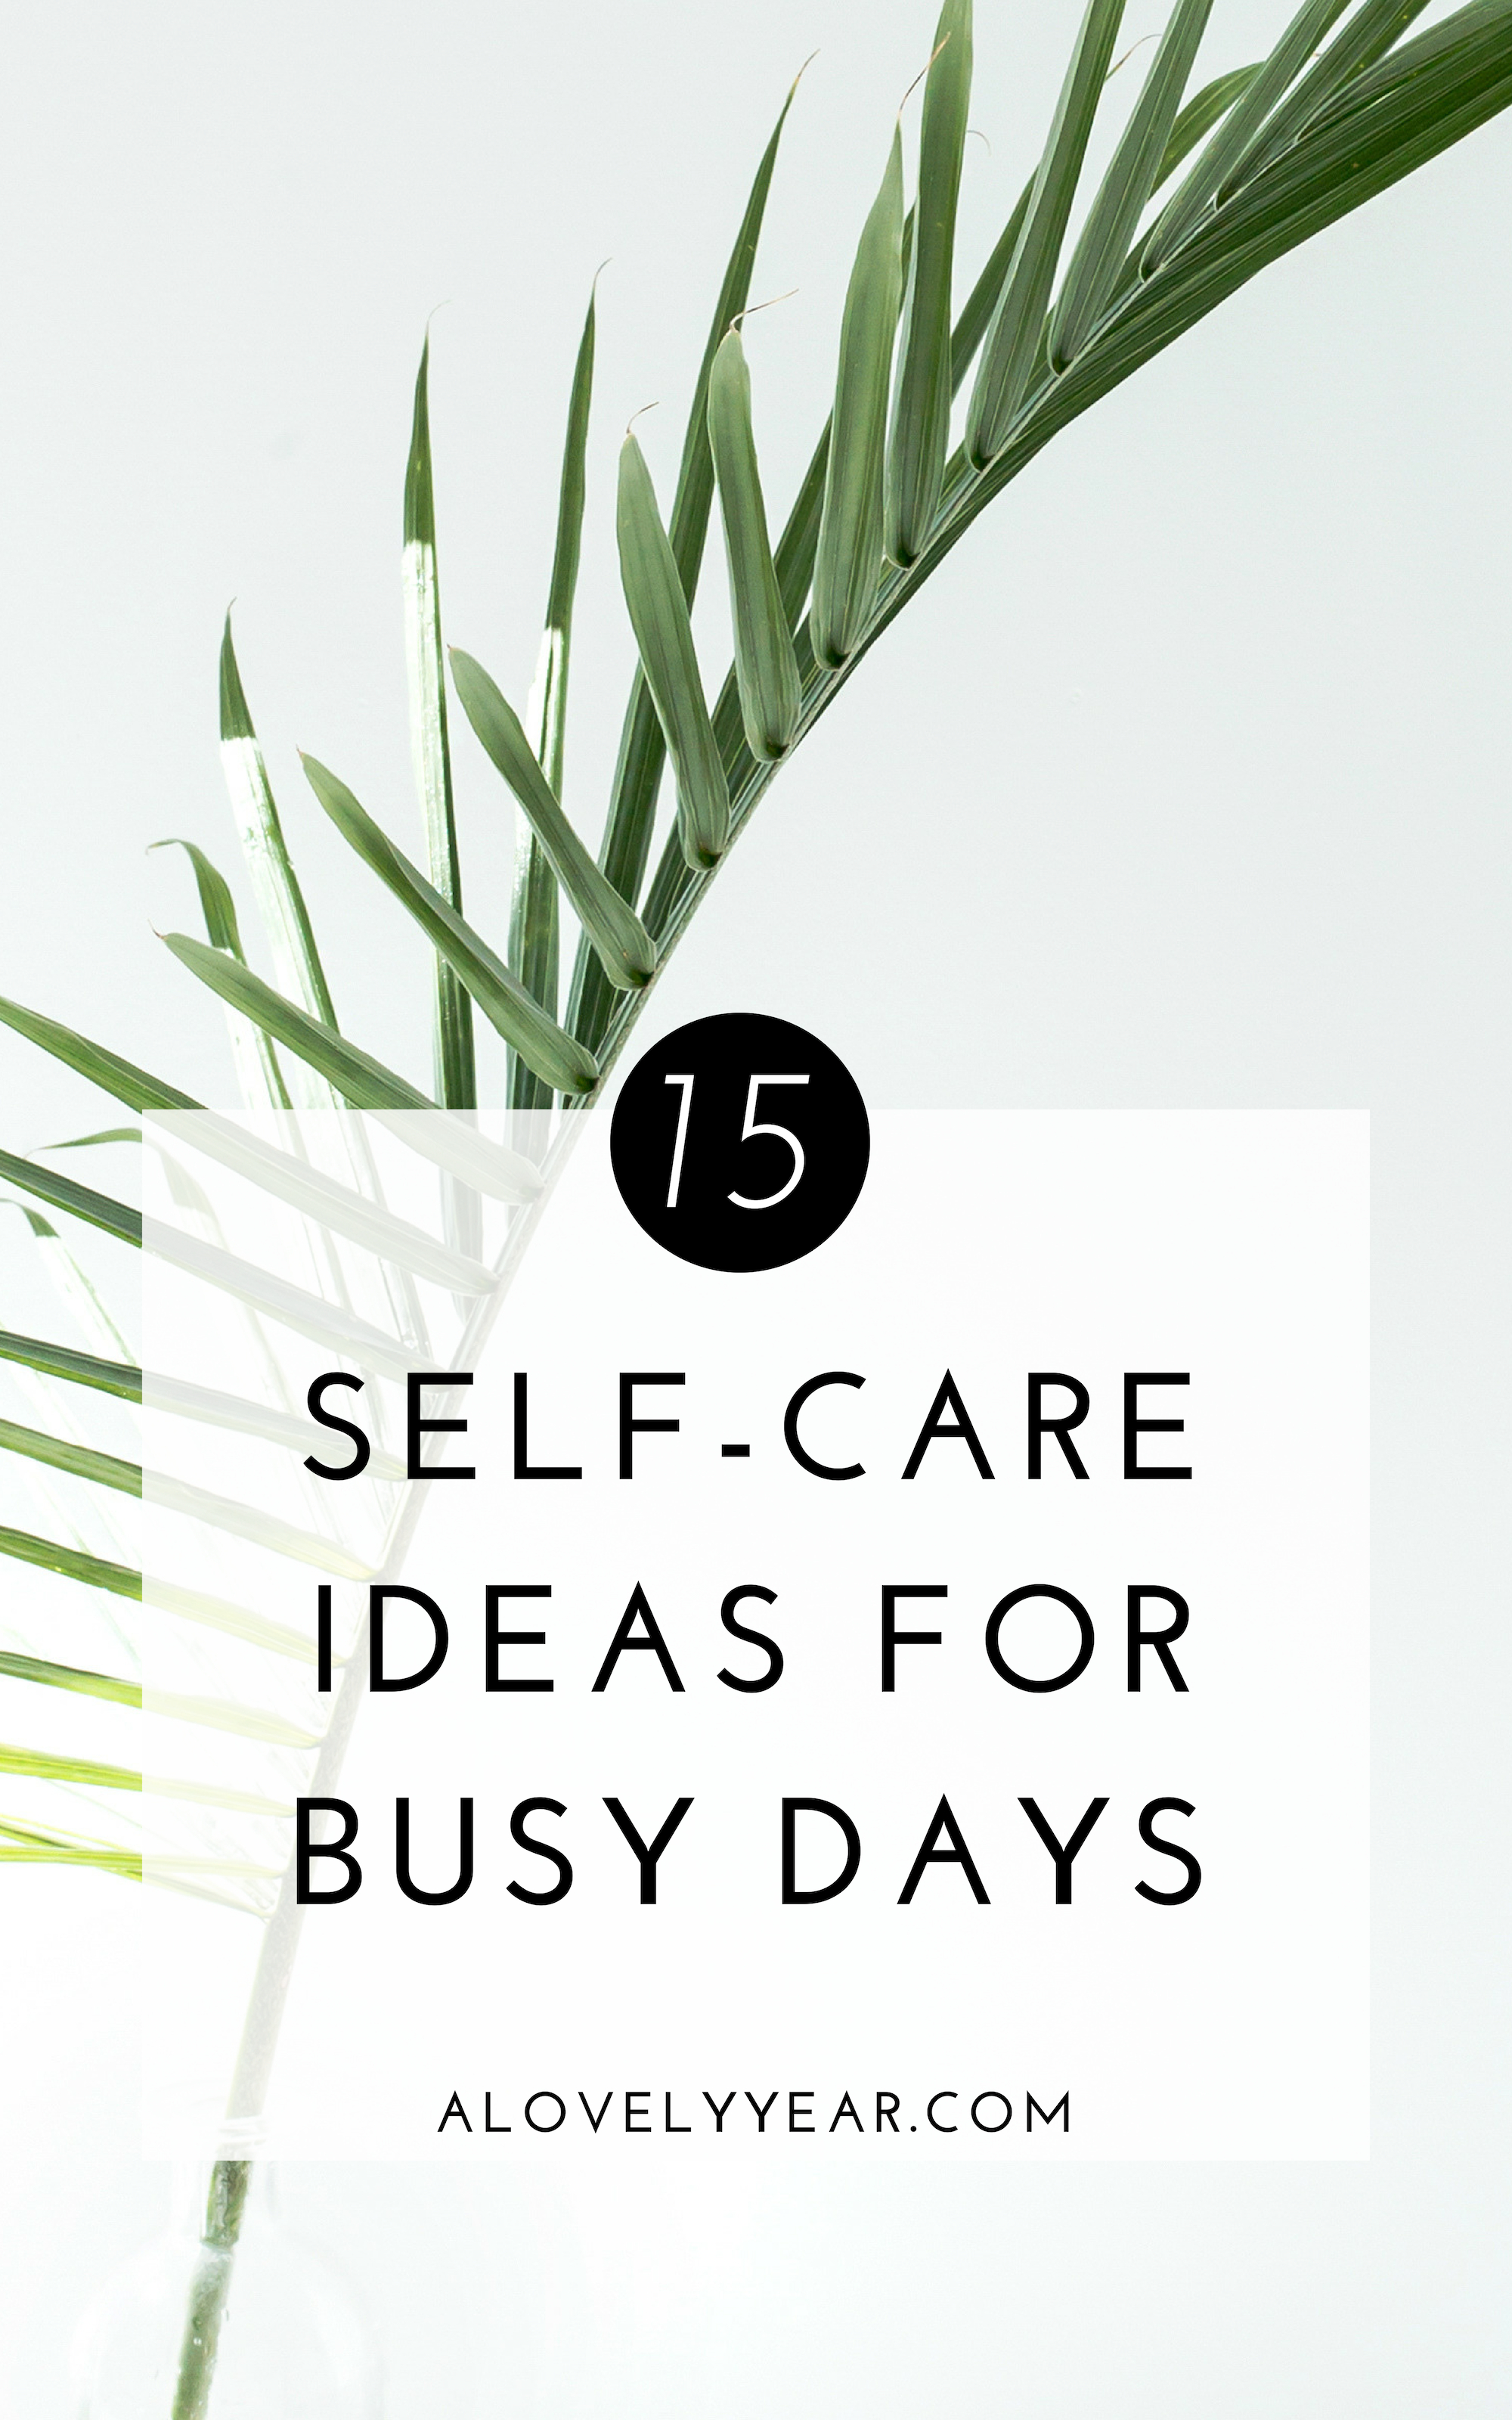 15 self-care ideas for busy days that take 5 minutes or less